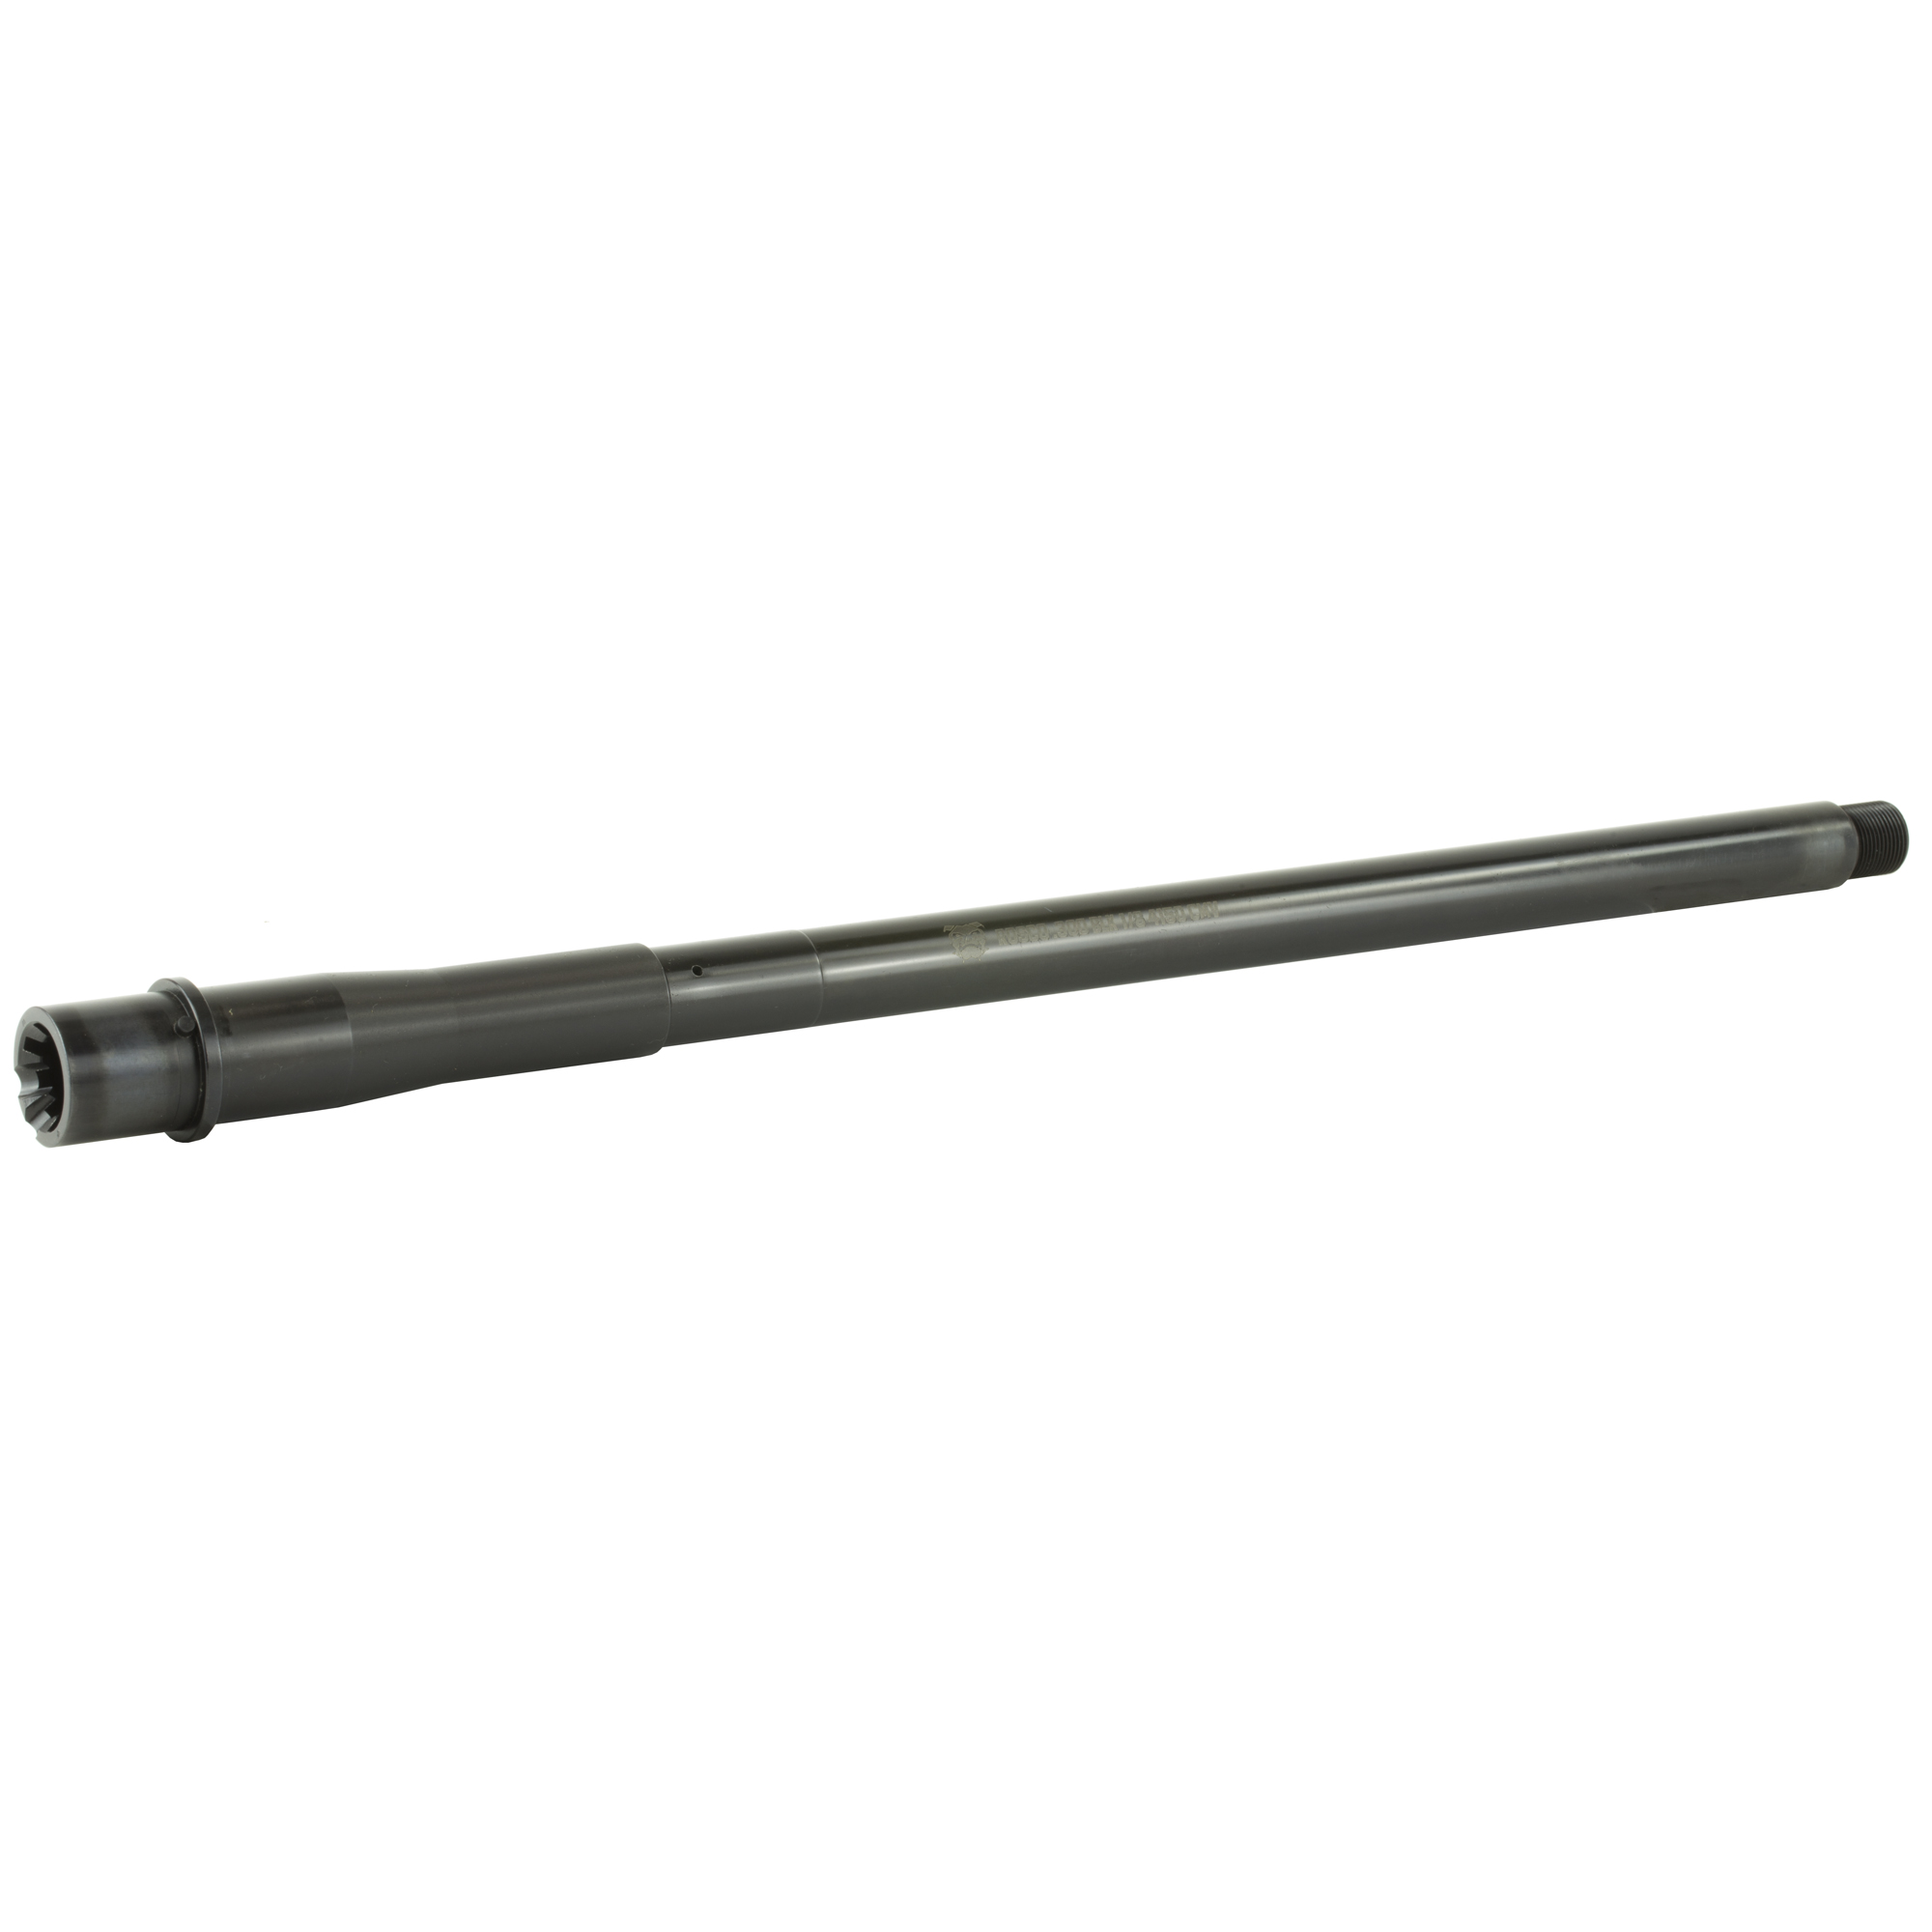 """This Rosco 16"""" 300 Blackout (300 BLK) barrel is perfectly suited for carbines shooters that plan on running only supersonic ammo"""" or are building a well-balanced hunting platform. Rosco 300 Blackout barrels were created by using input from SOCOM end users and some of the original creators of the 300 Blackout caliber. Every barrel was designed to optimize the original role for this caliber; to be suppressor friendly and accurate. It is Rosco's goal to get you the performance that you seek out of these barrels when running sub-sonic ammo or supersonic ammo (depending on barrel length). Twist rates"""" gas port diameters"""" and lengths have all been taken into account when we set out to make these. Let's just say that we don't like leaving things to chance."""